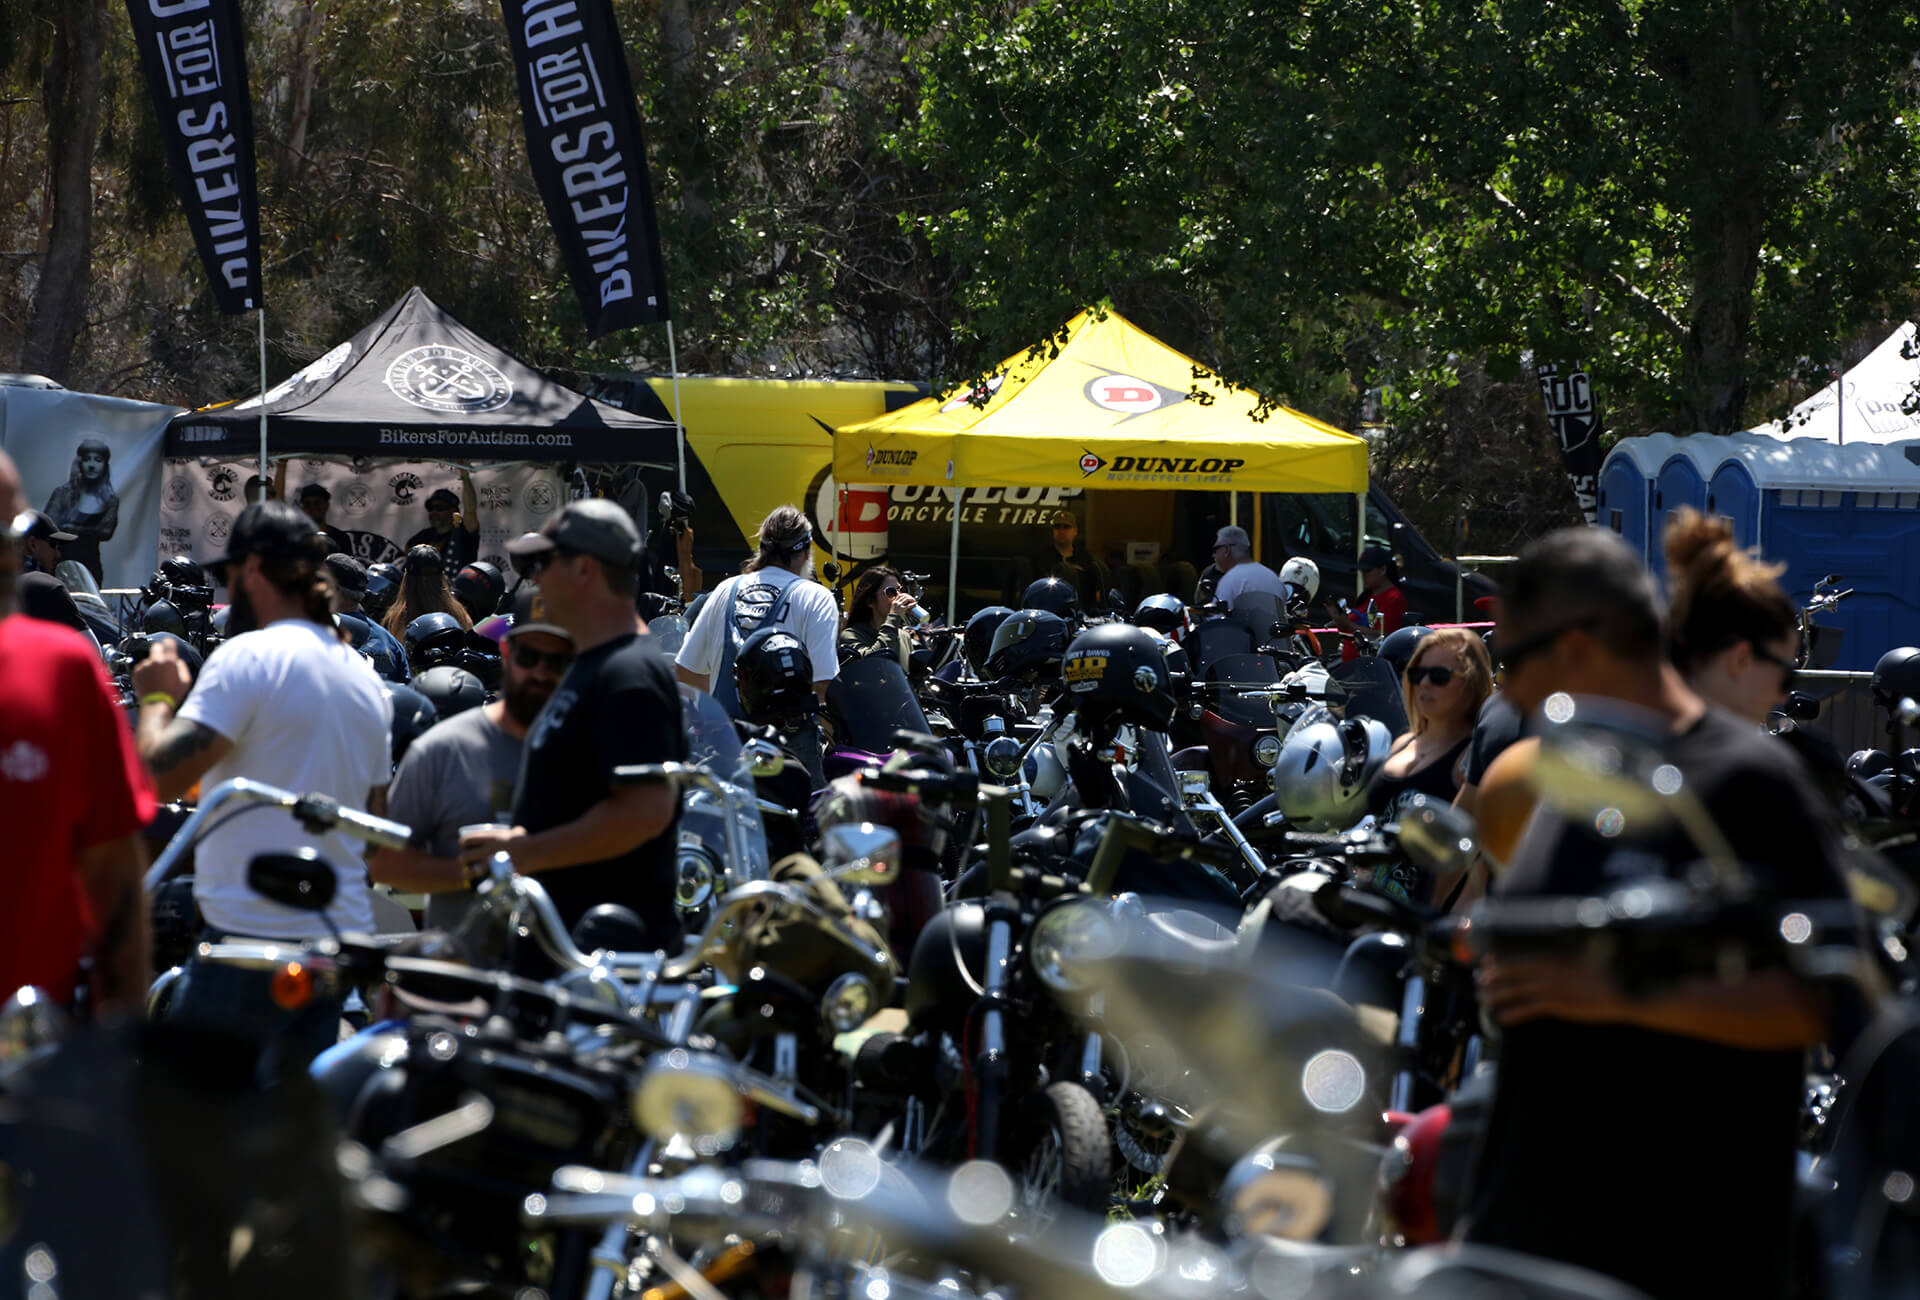 free motorcycle l  2018 Born Free Motorcycle Show | Dunlop Motorcycle